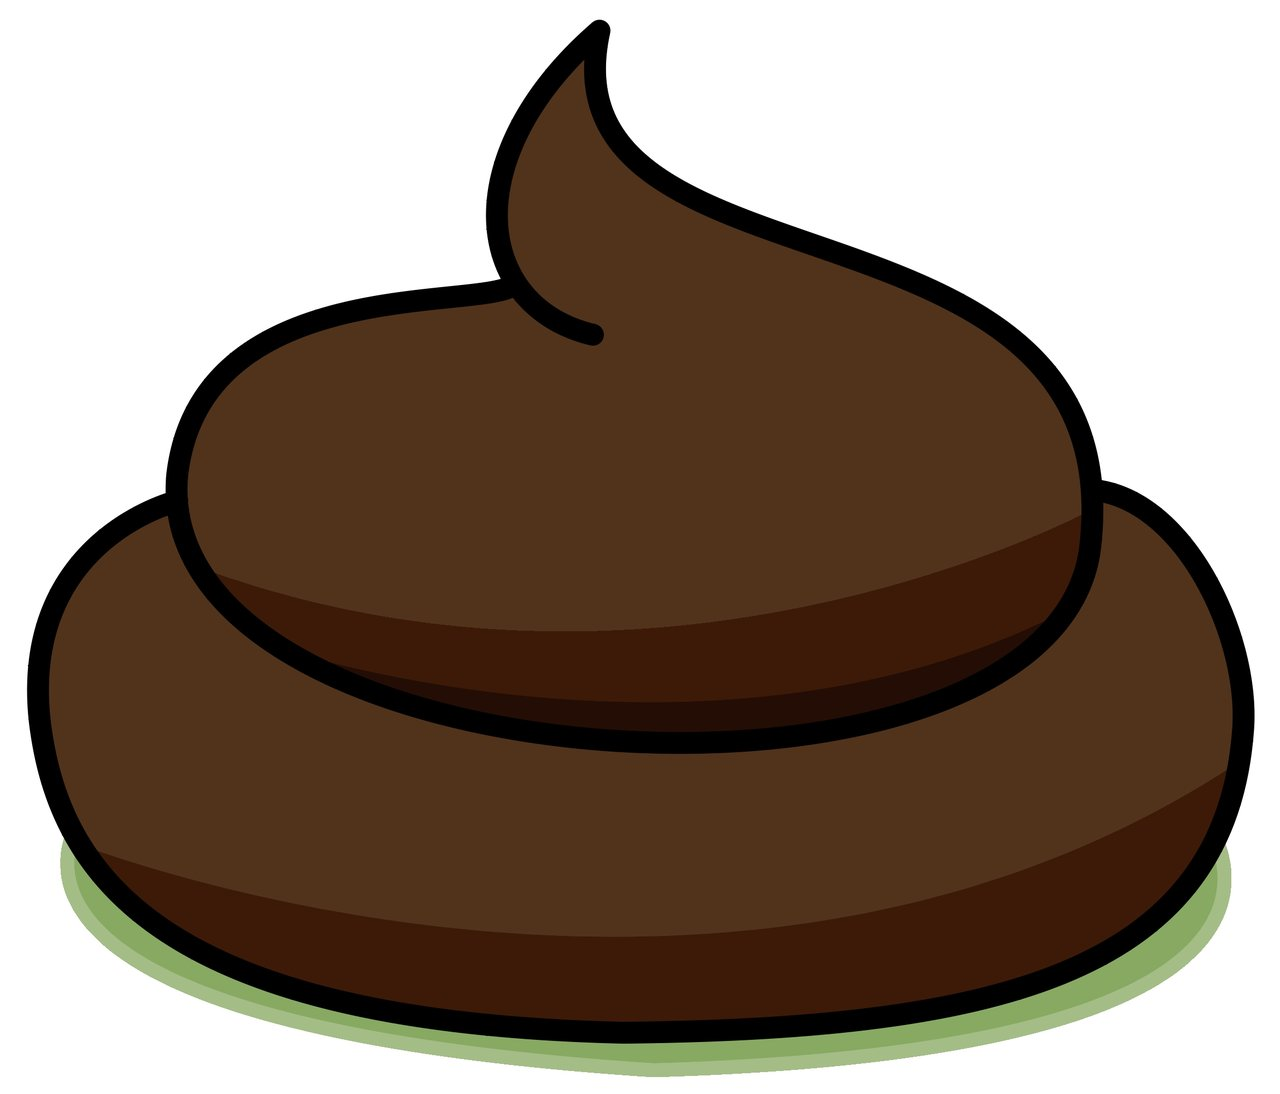 Poop clipart. Free pictures clipartix cartoon